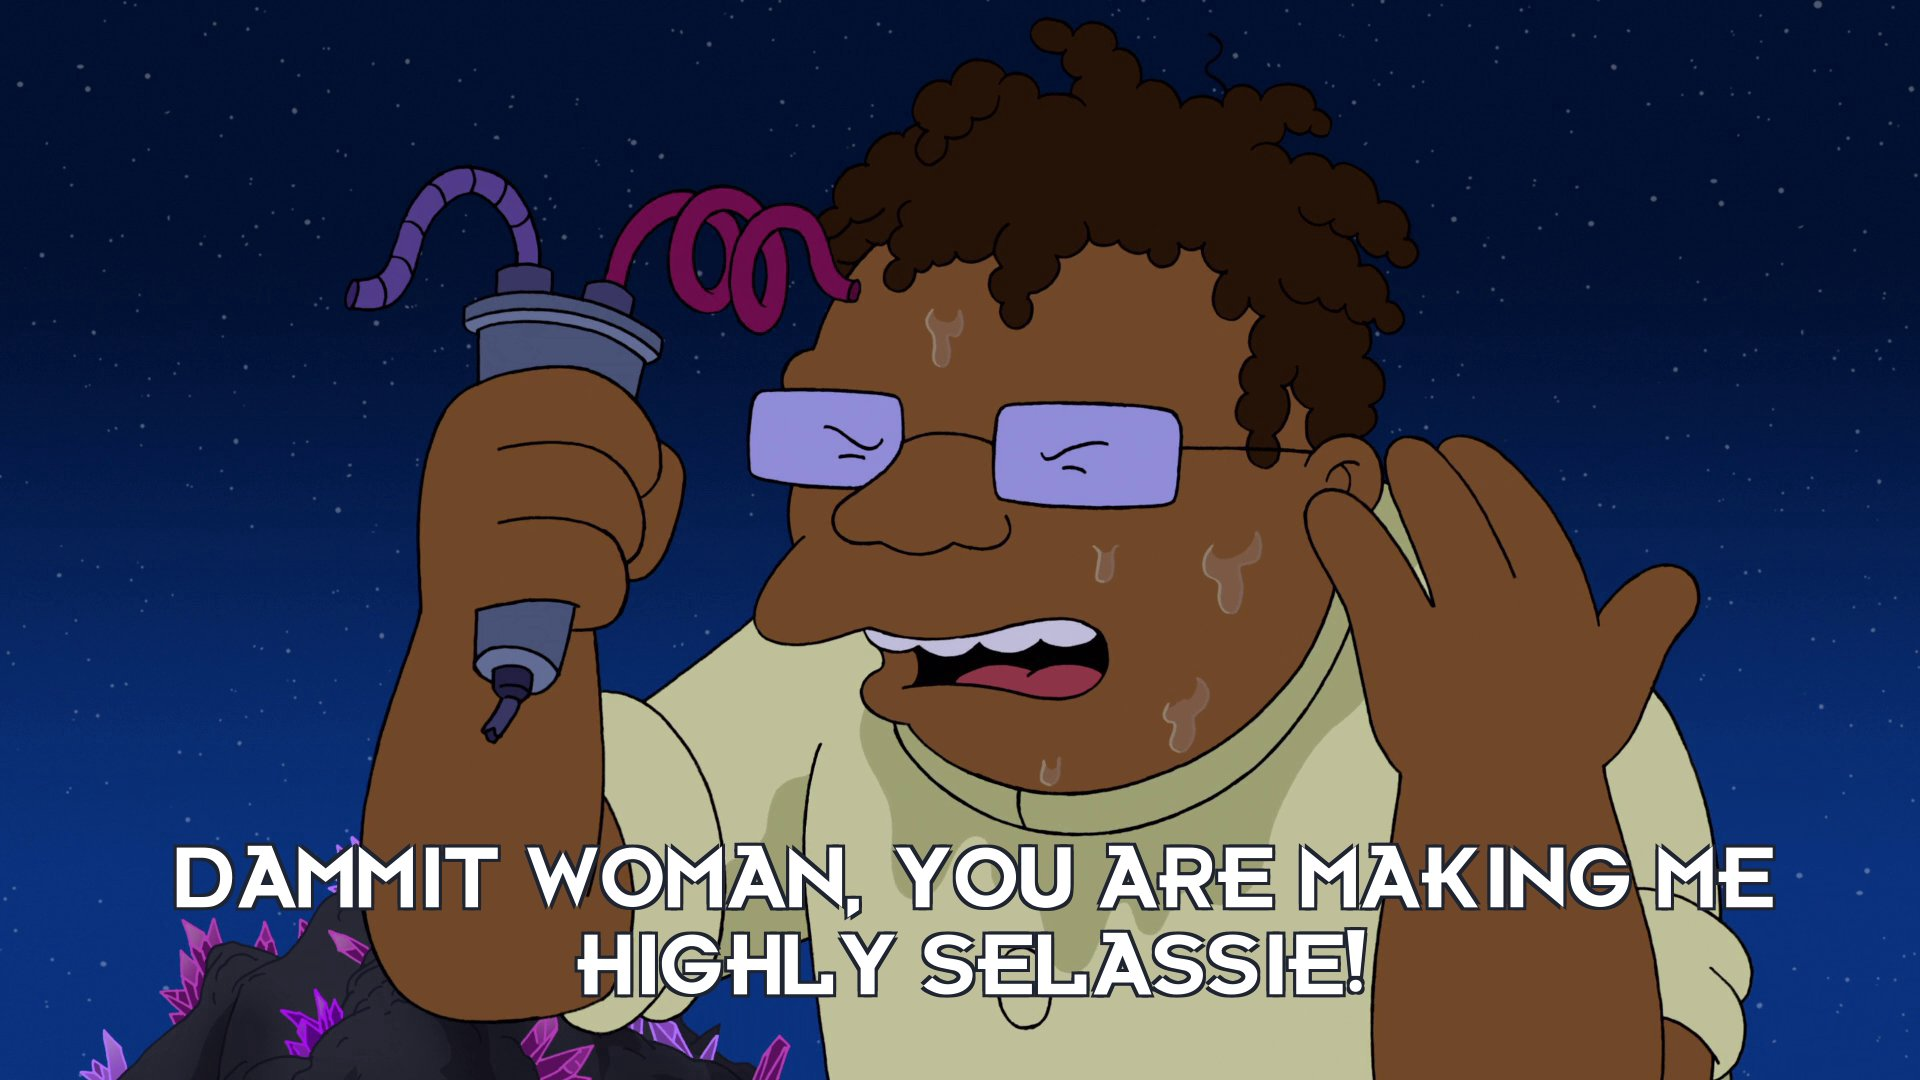 Hermes Conrad: Dammit woman, you are making me highly Selassie!